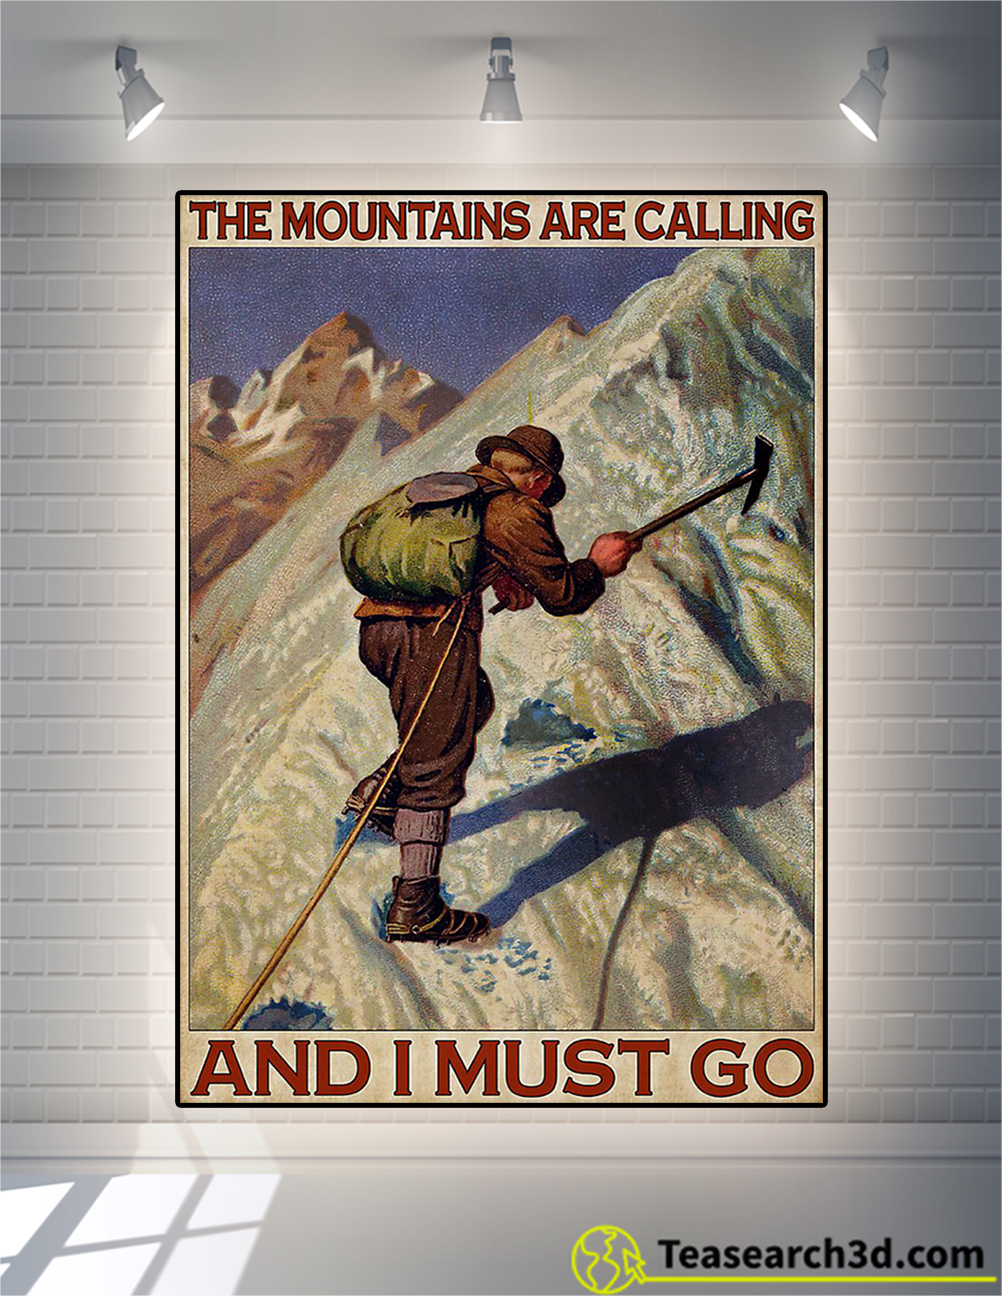 The moutains are calling and I must go poster